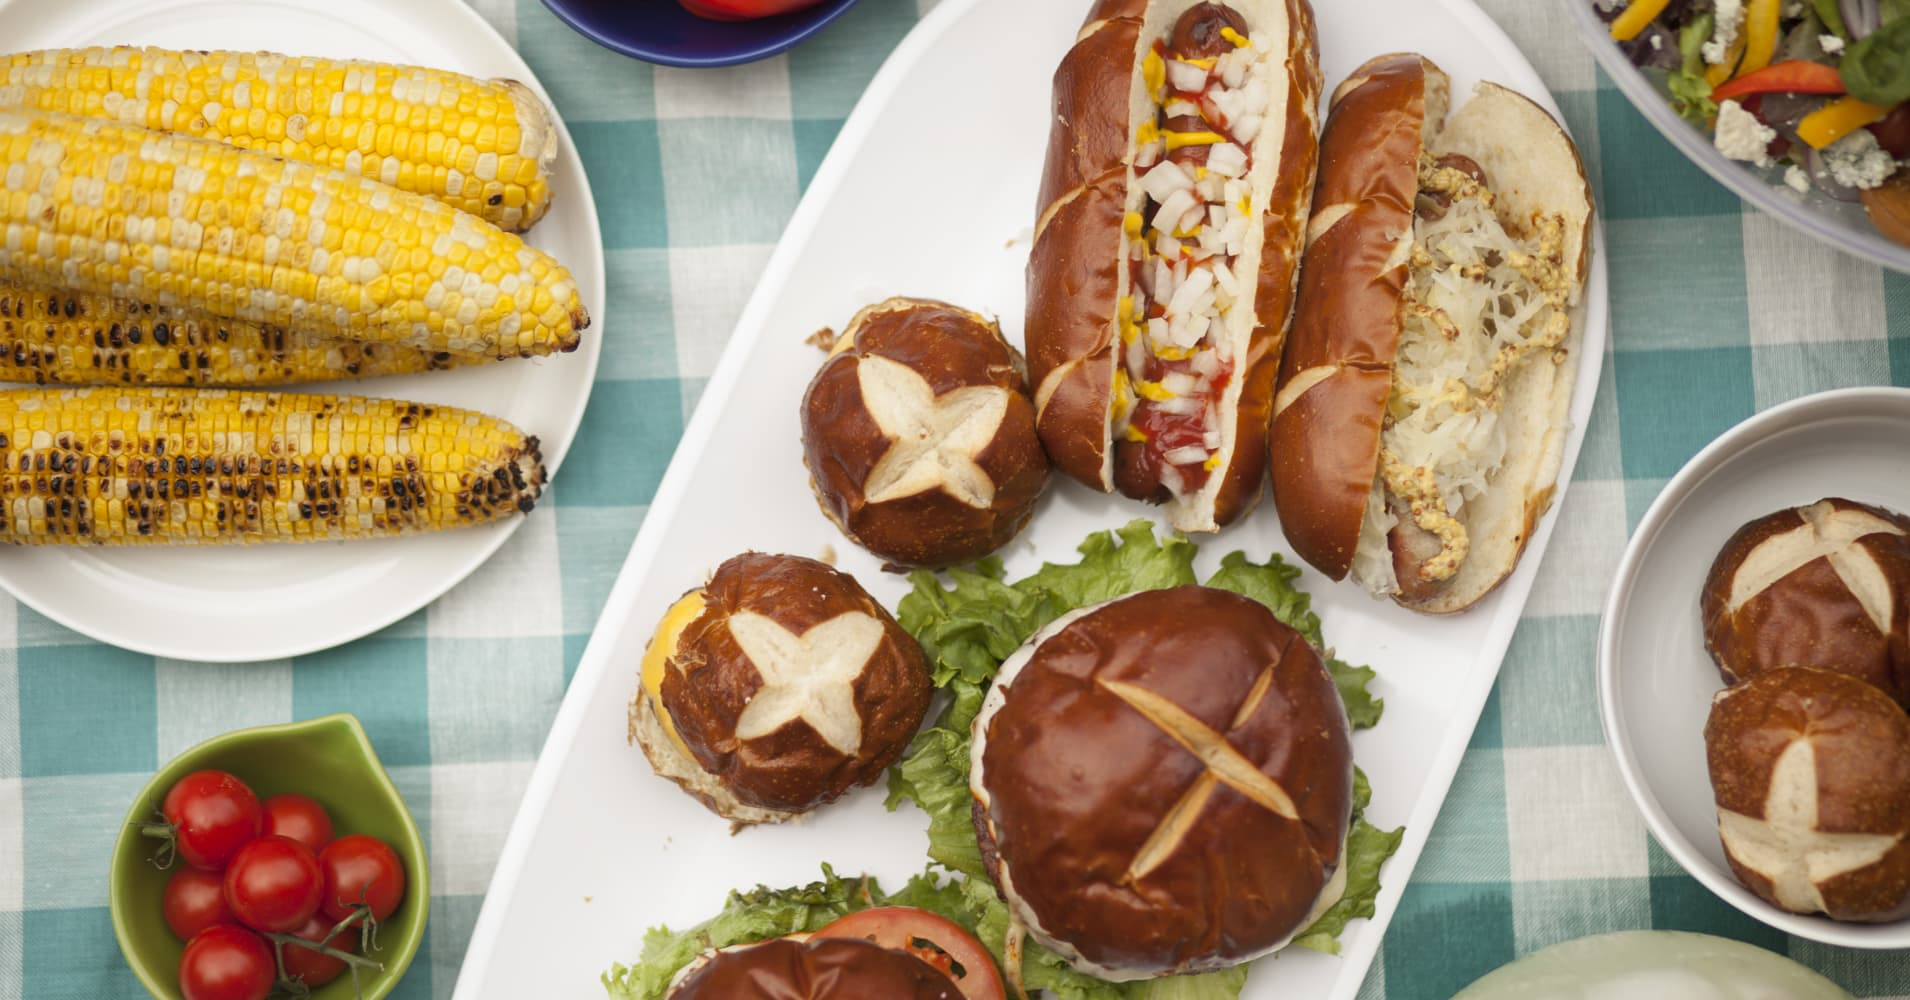 Appearances on Top Chef and on the plate of a high-end New York City sushi chef have brought 15 minutes of fame to Miller Baking's Pretzilla bun. The industrial bakery is planning to make the fame last: It's overhauled operations to focus on pretzel bread, or bust.